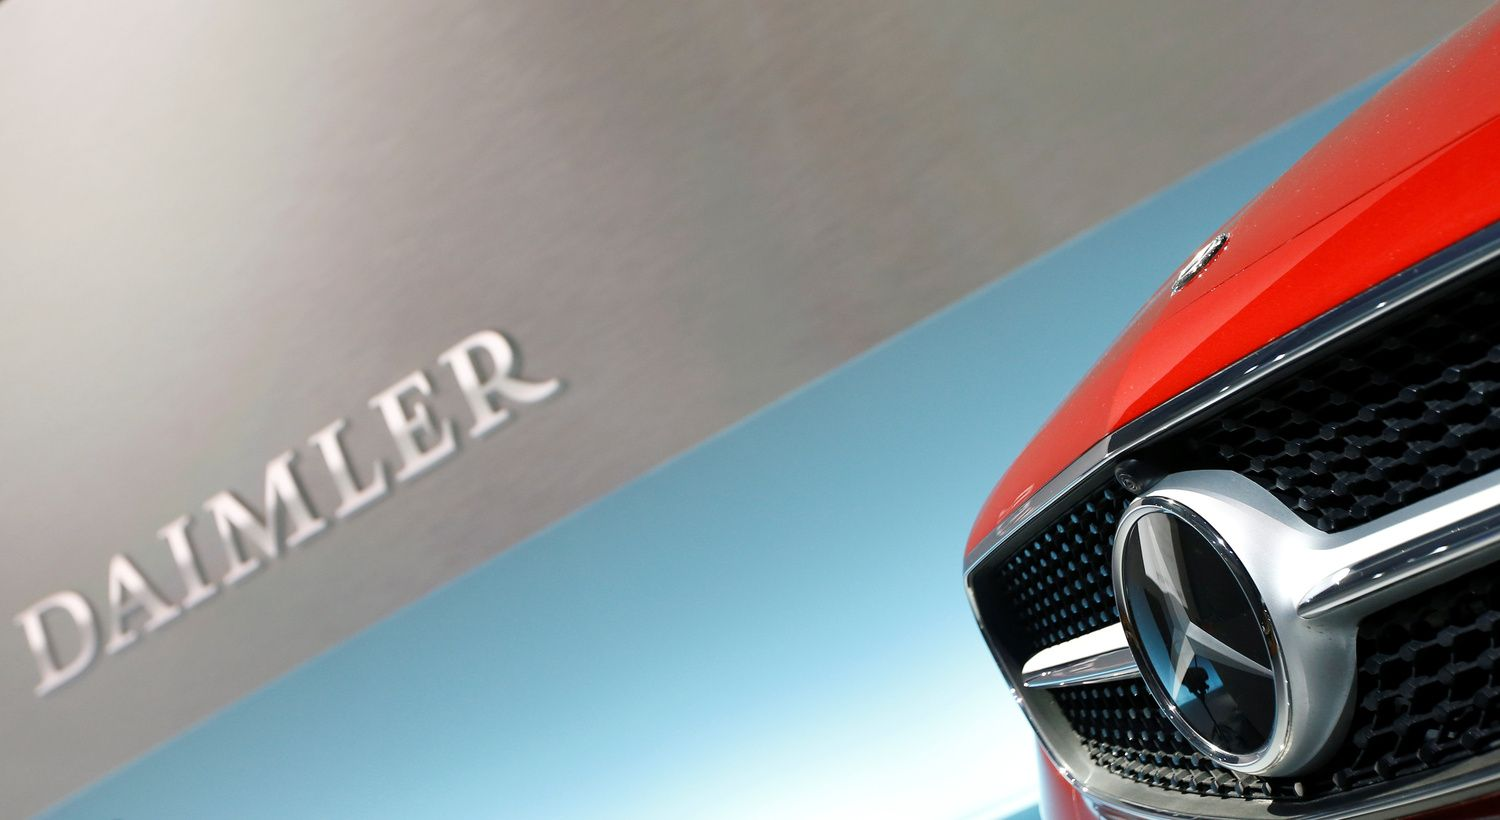 Daimler Vows to Fight for Diesel's Survival Amid Tech Disruption